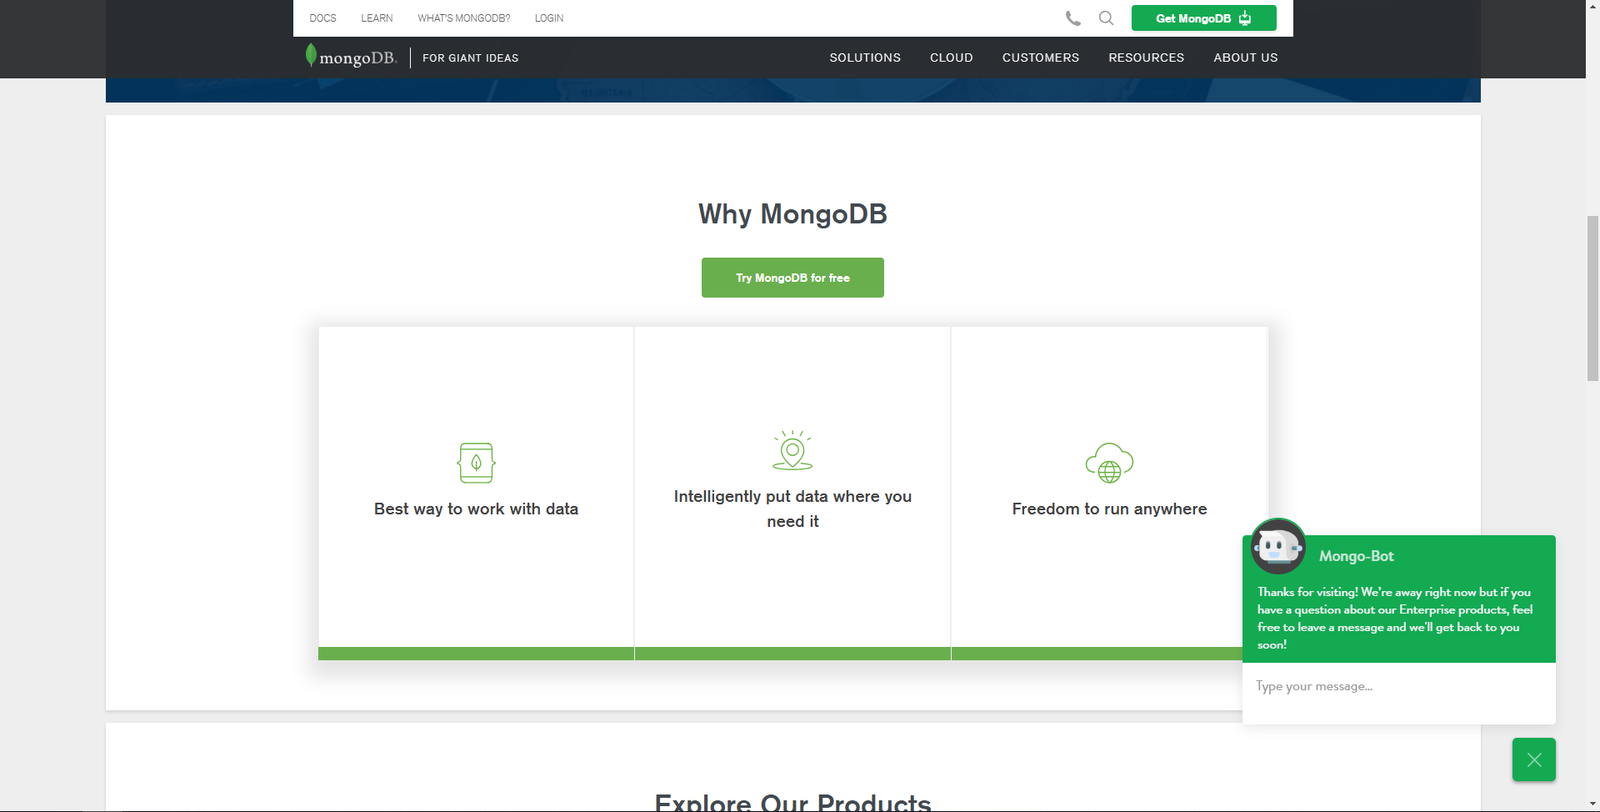 mongo db website screenshot